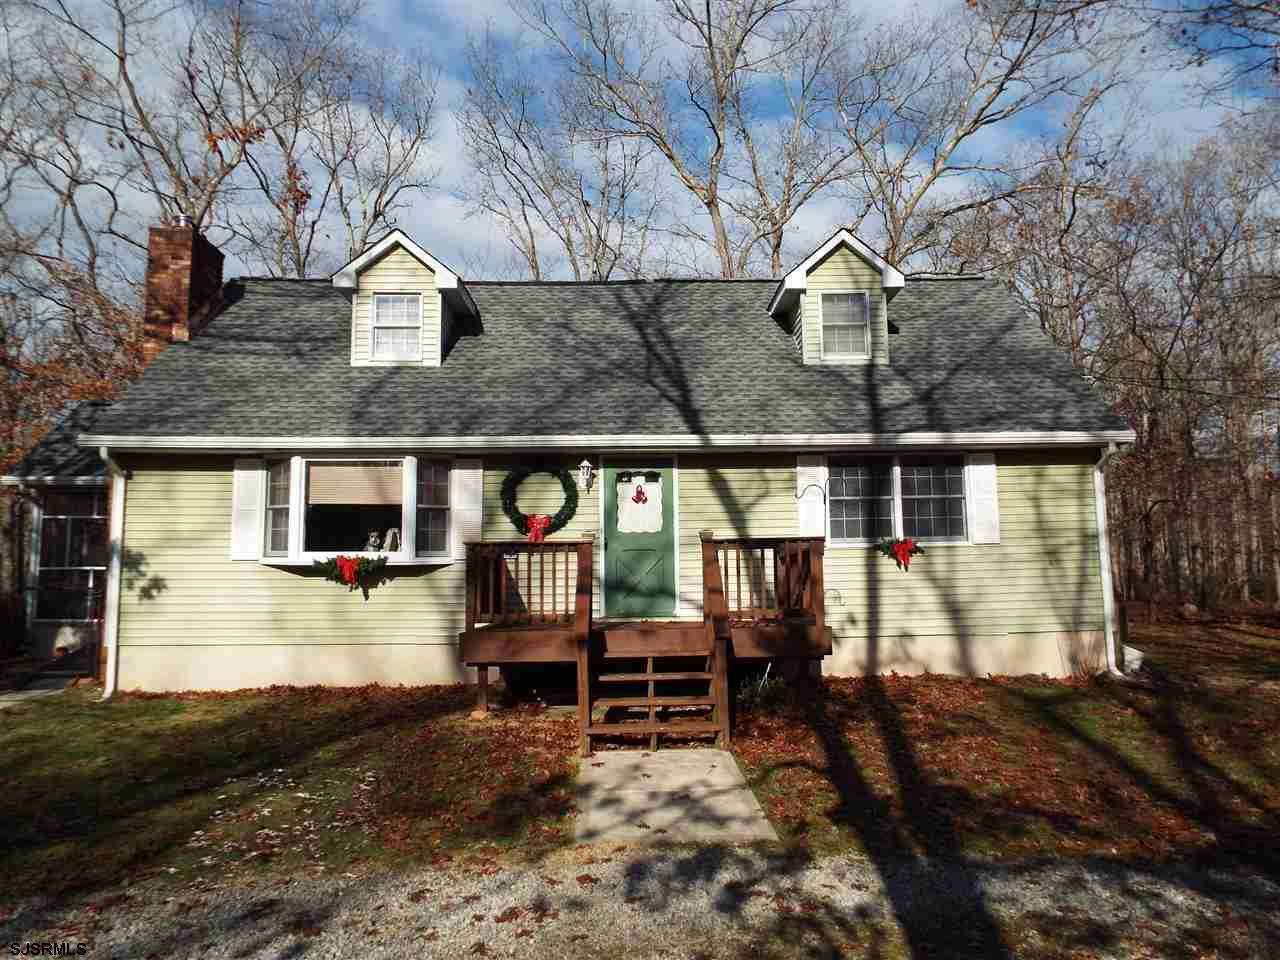 Privacy and social distancing Come naturally on this 6+ acre three bed two bath Cape Cod .Plenty of